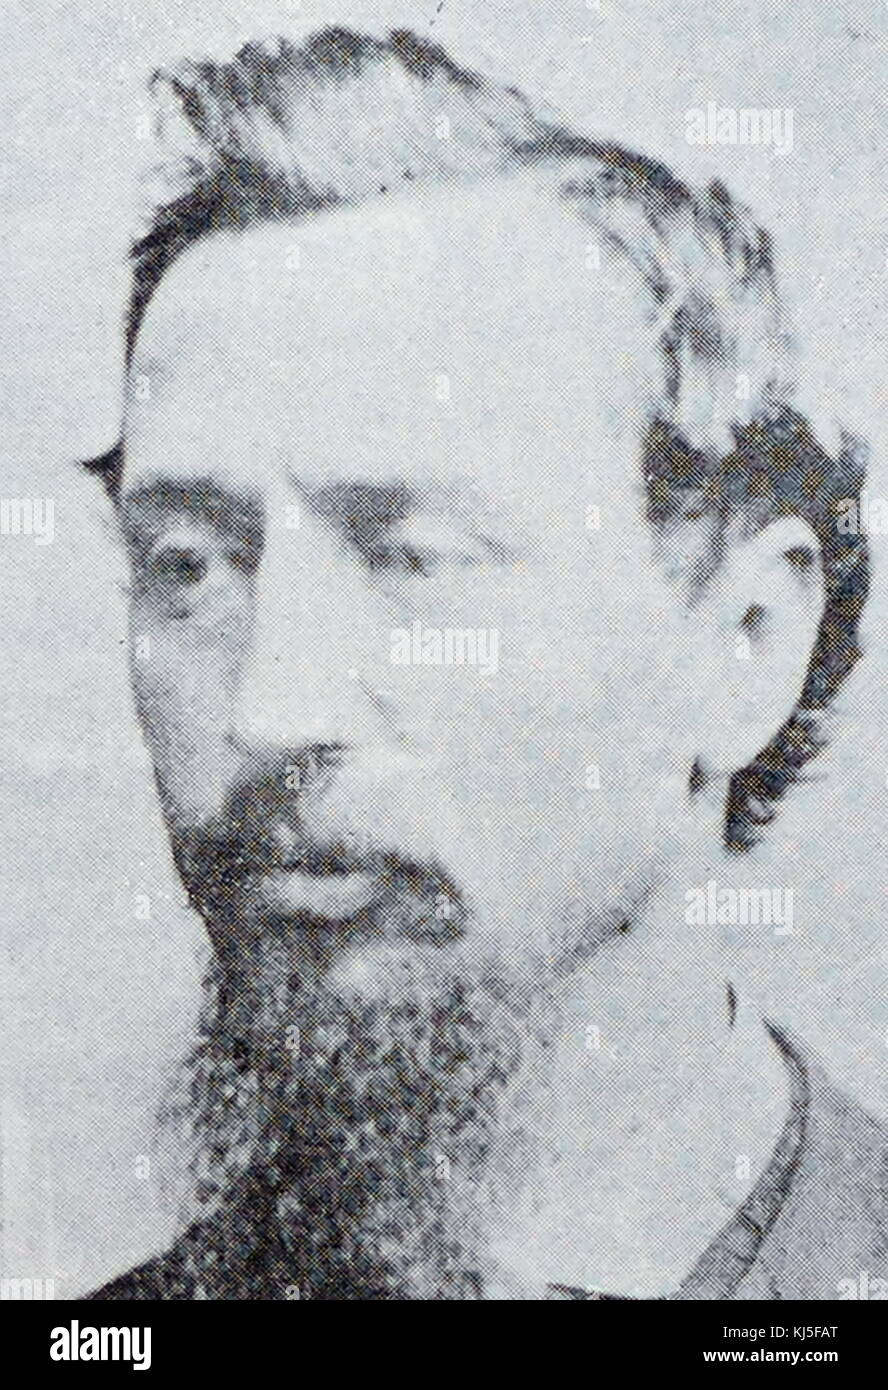 Portrait of Charles W. Bullard, an American criminal who was also known as 'Piano Charley'. Dated 19th Century Stock Photo